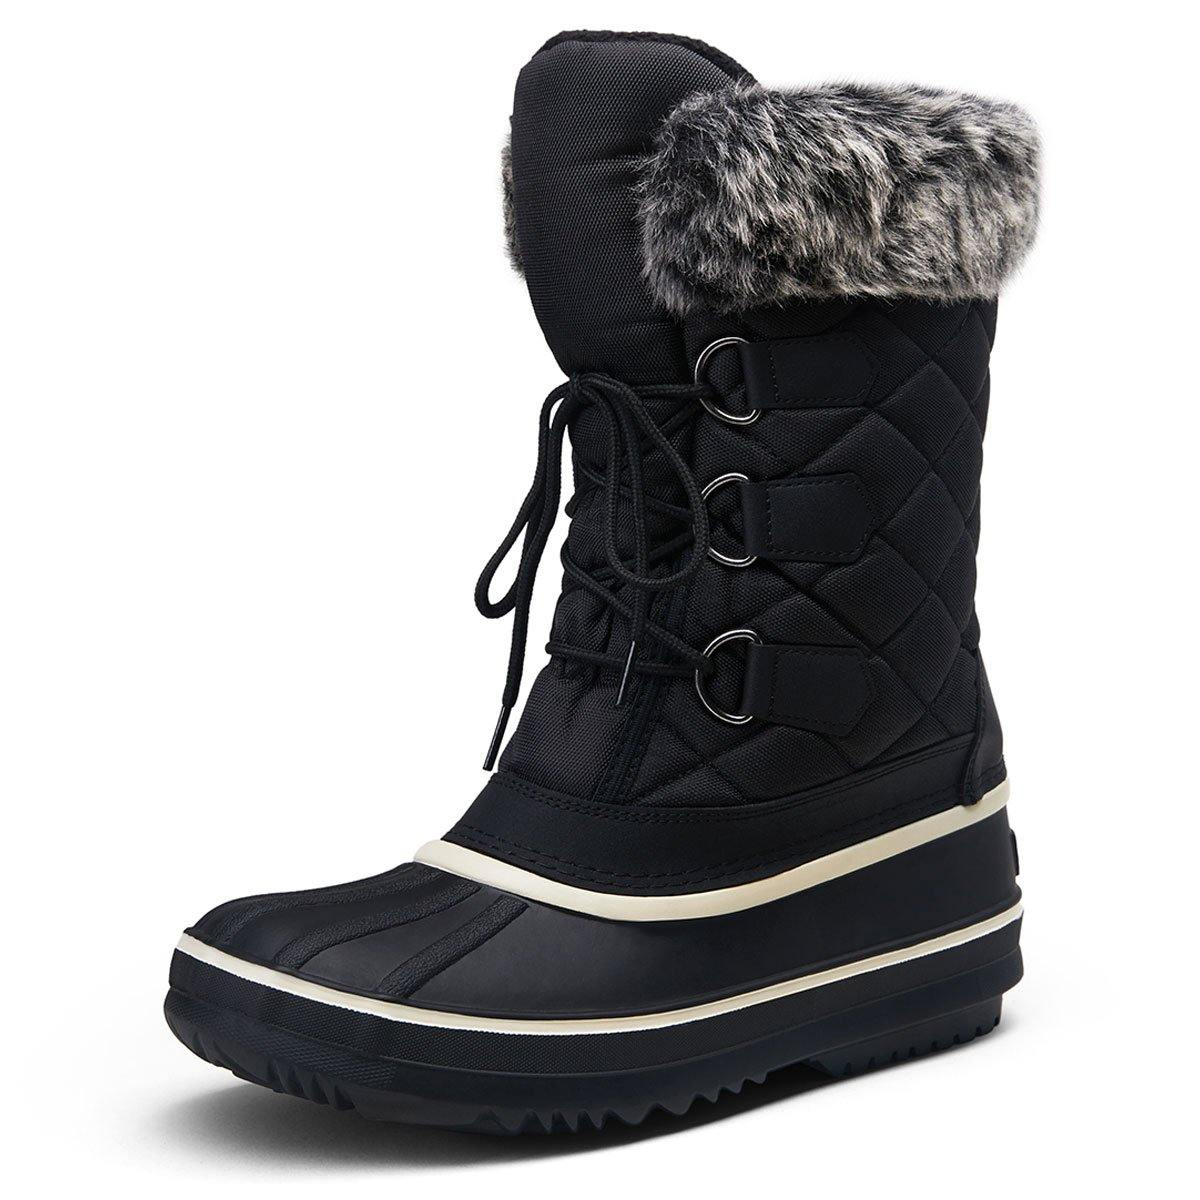 Women's Snow Boots Fuzzy Waterproof Winter Shoes | Vepose - Top shoes club